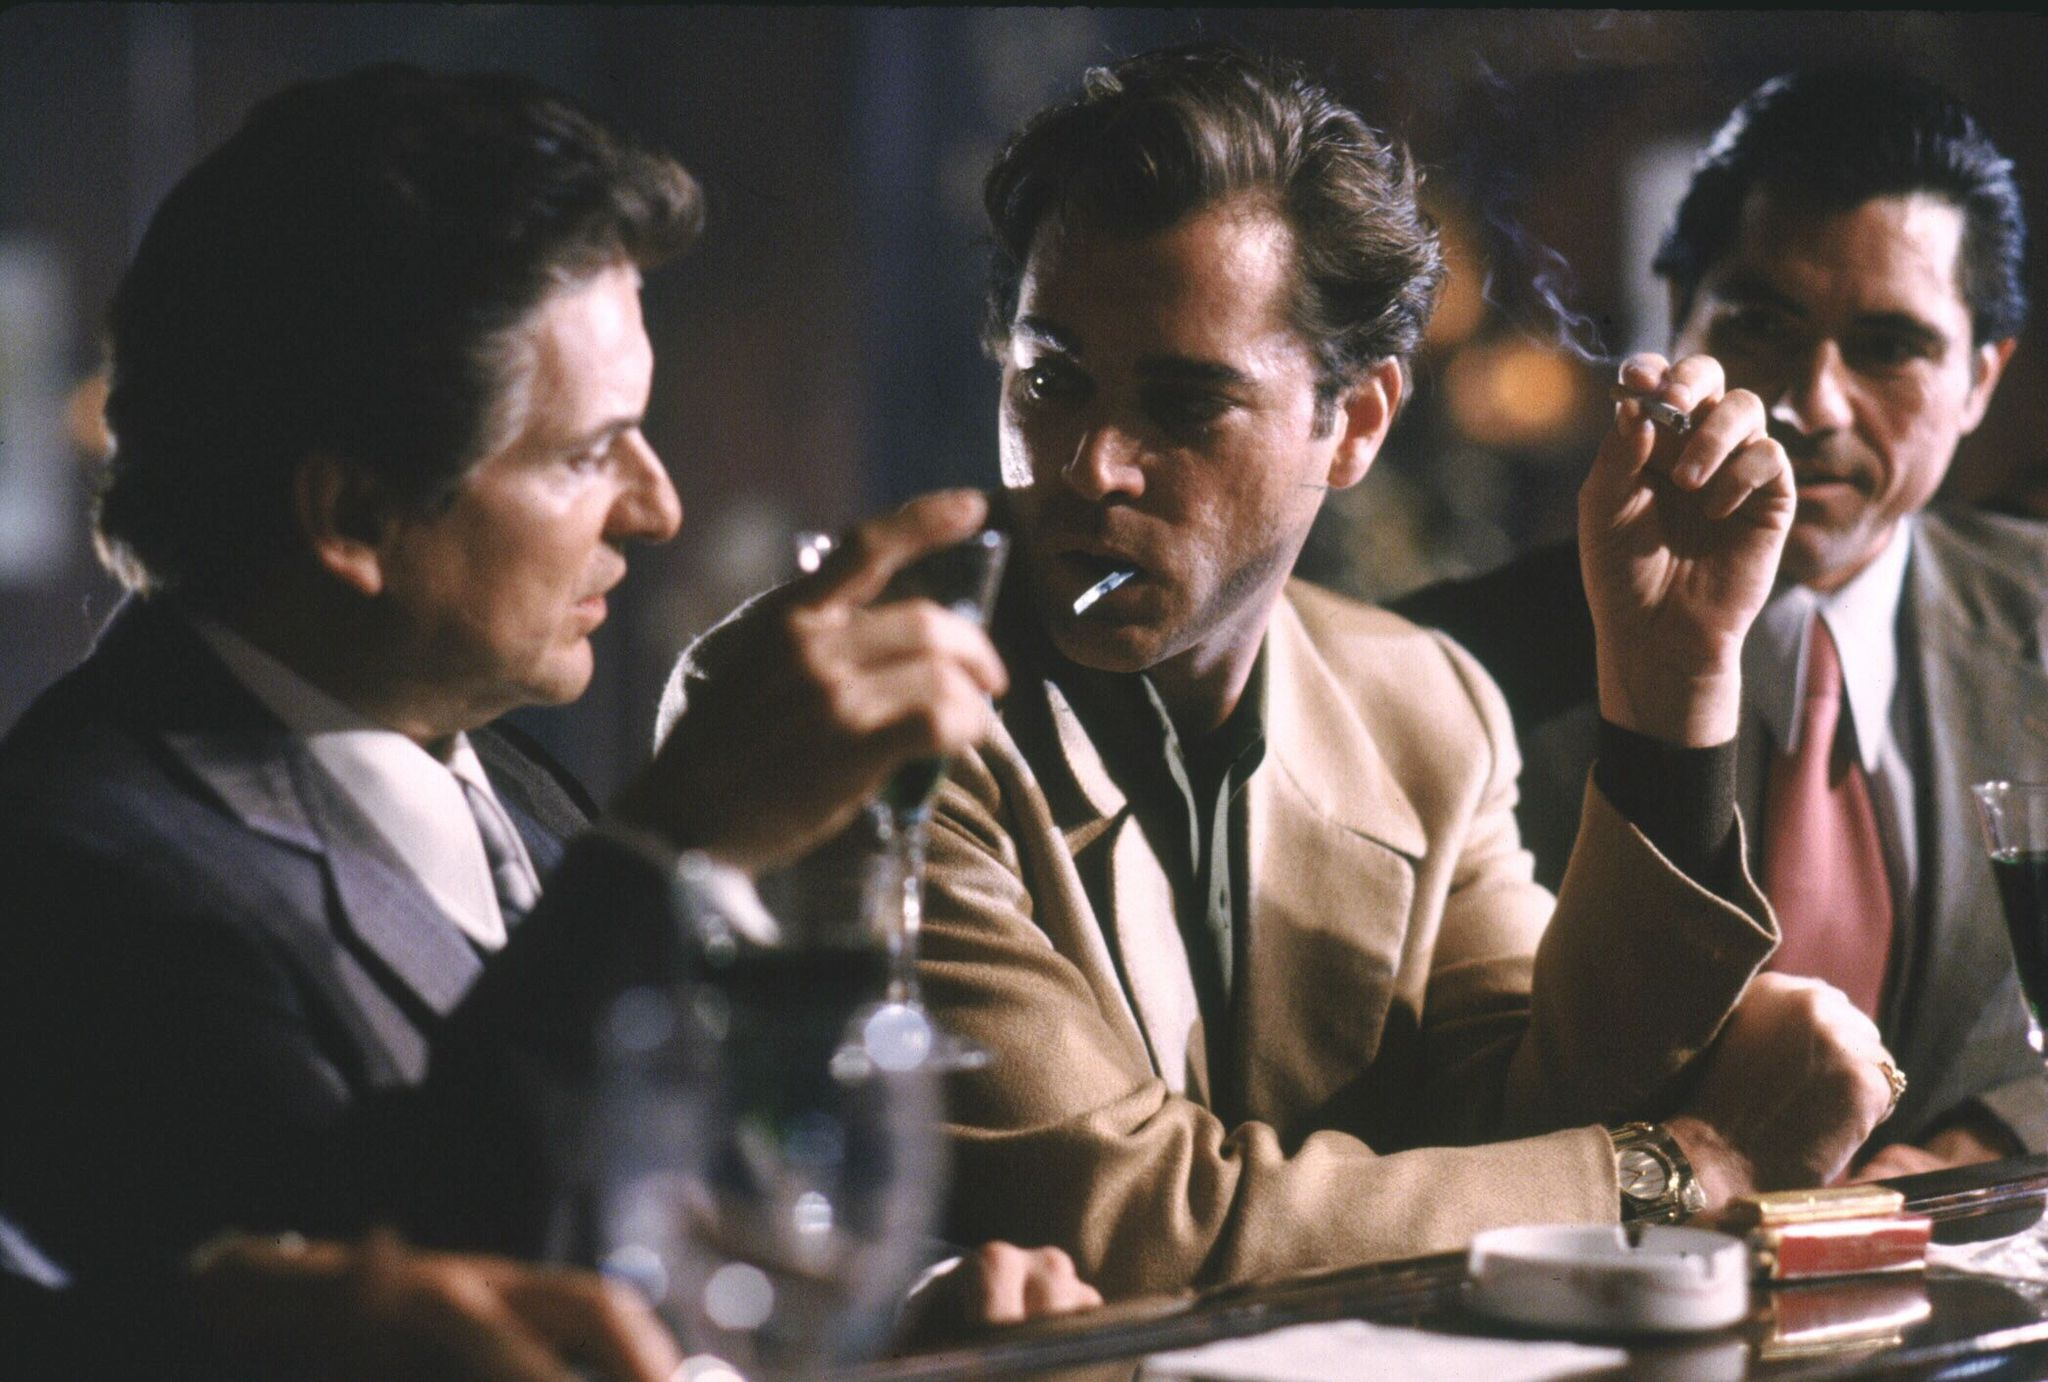 2048x1382 - Goodfellas Wallpapers 14